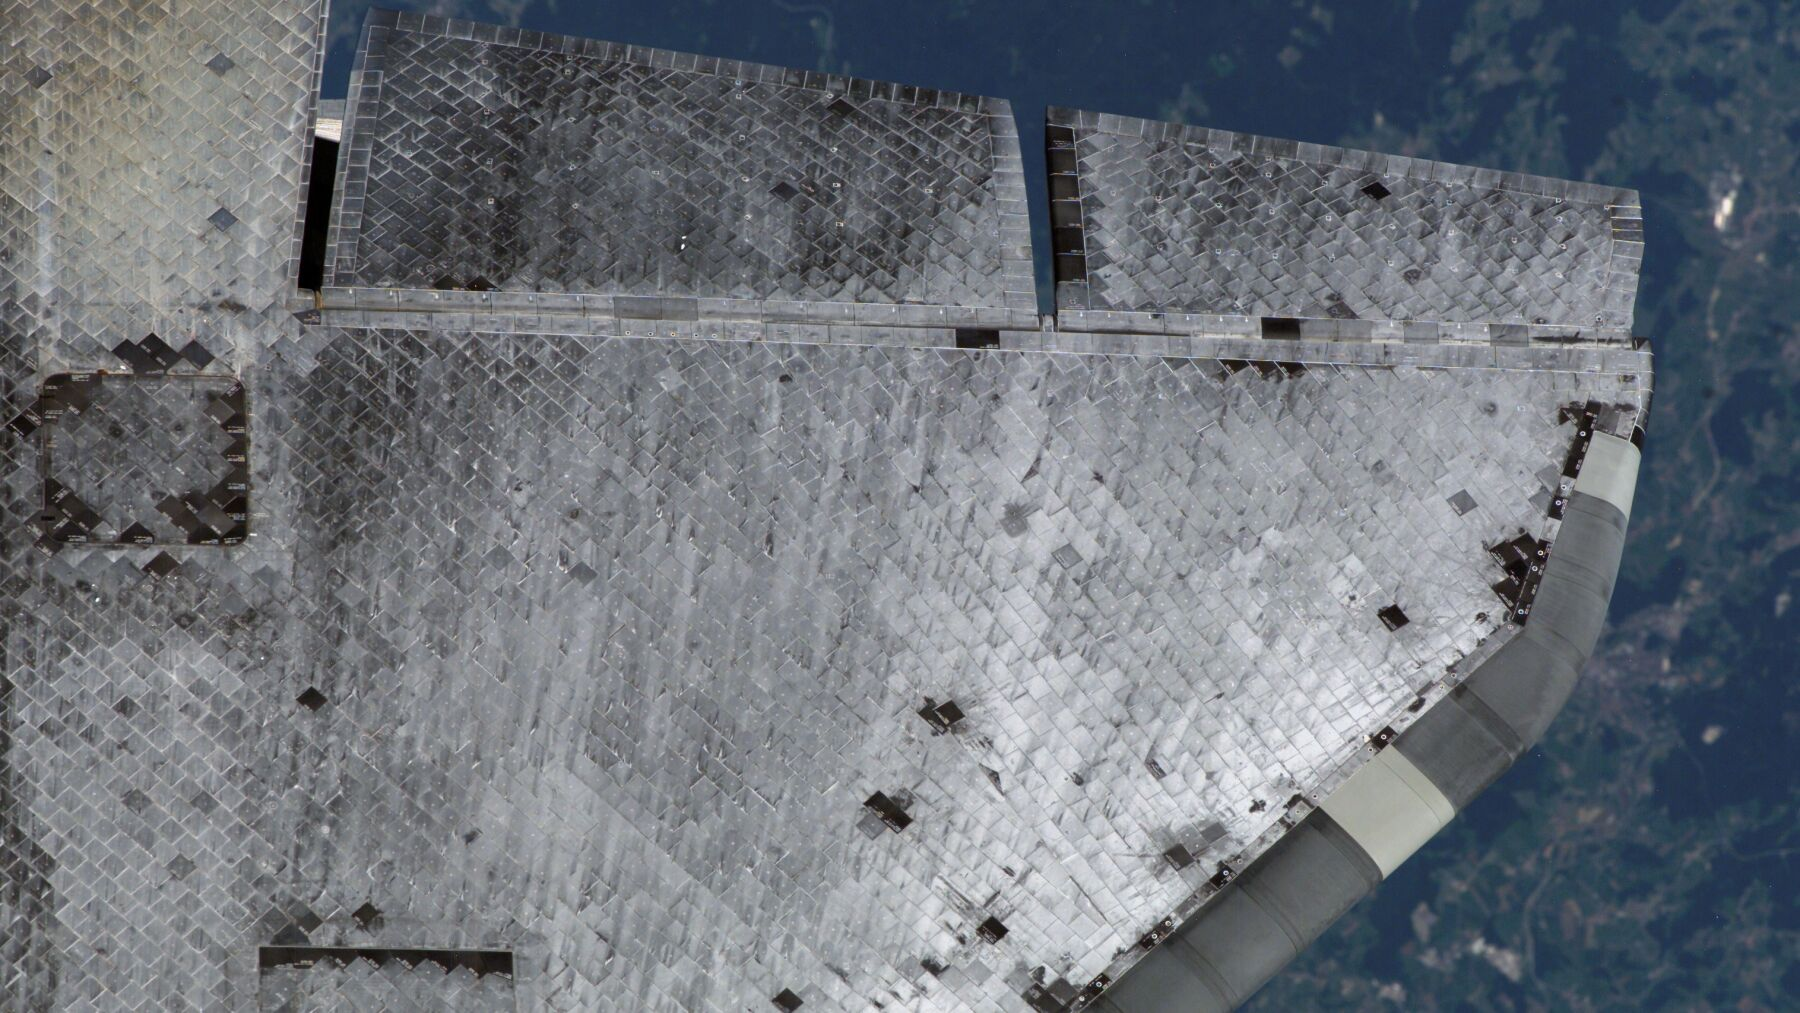 Underside of the Space Shuttle's wing